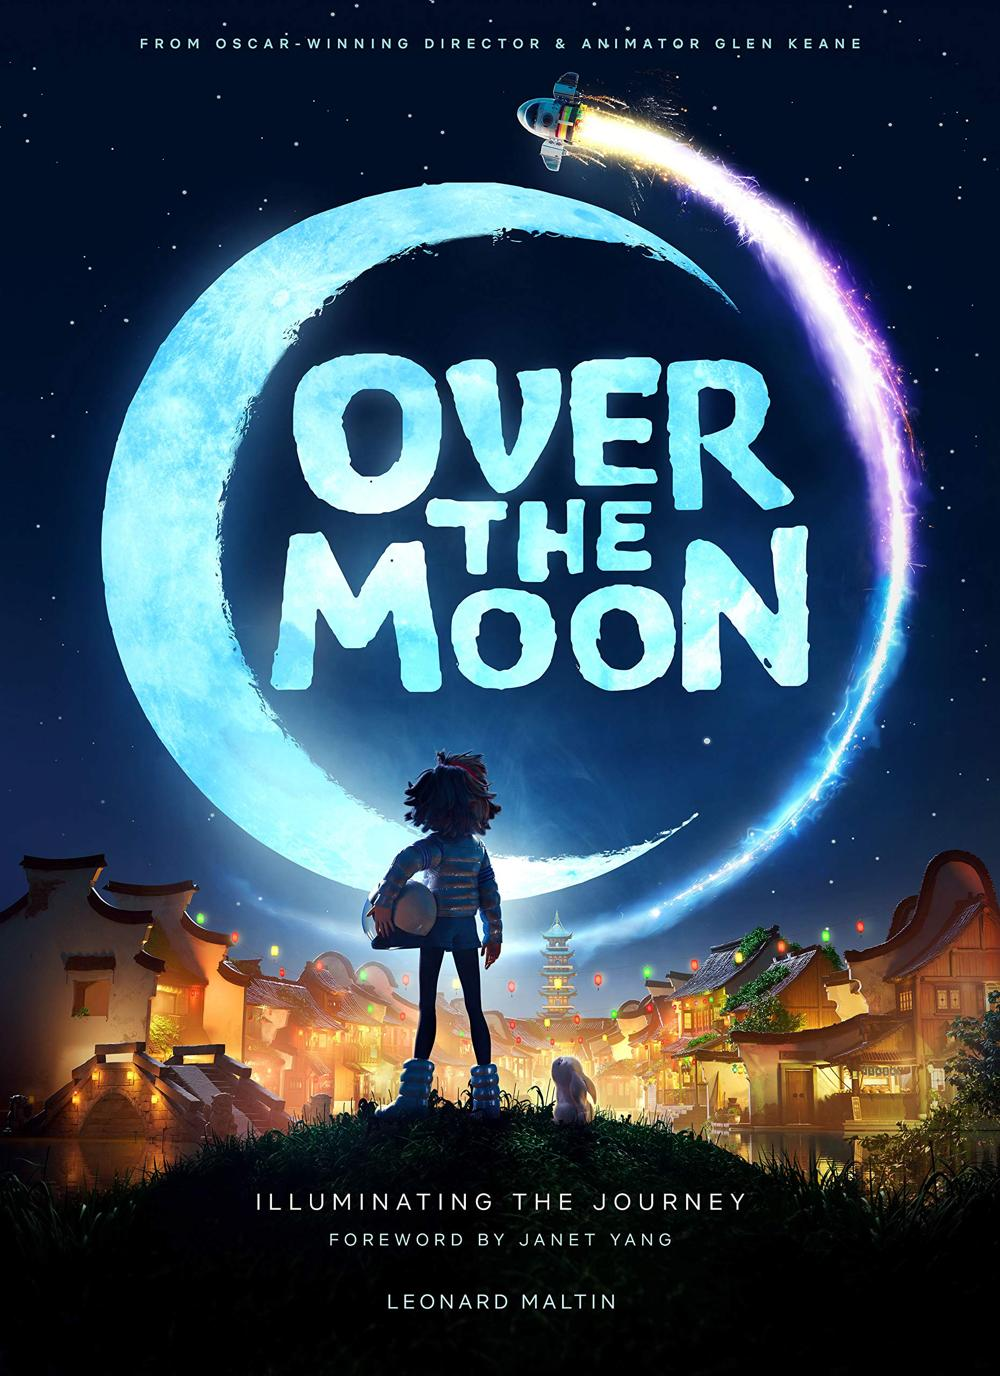 Over the Moon: Illuminating the Journey